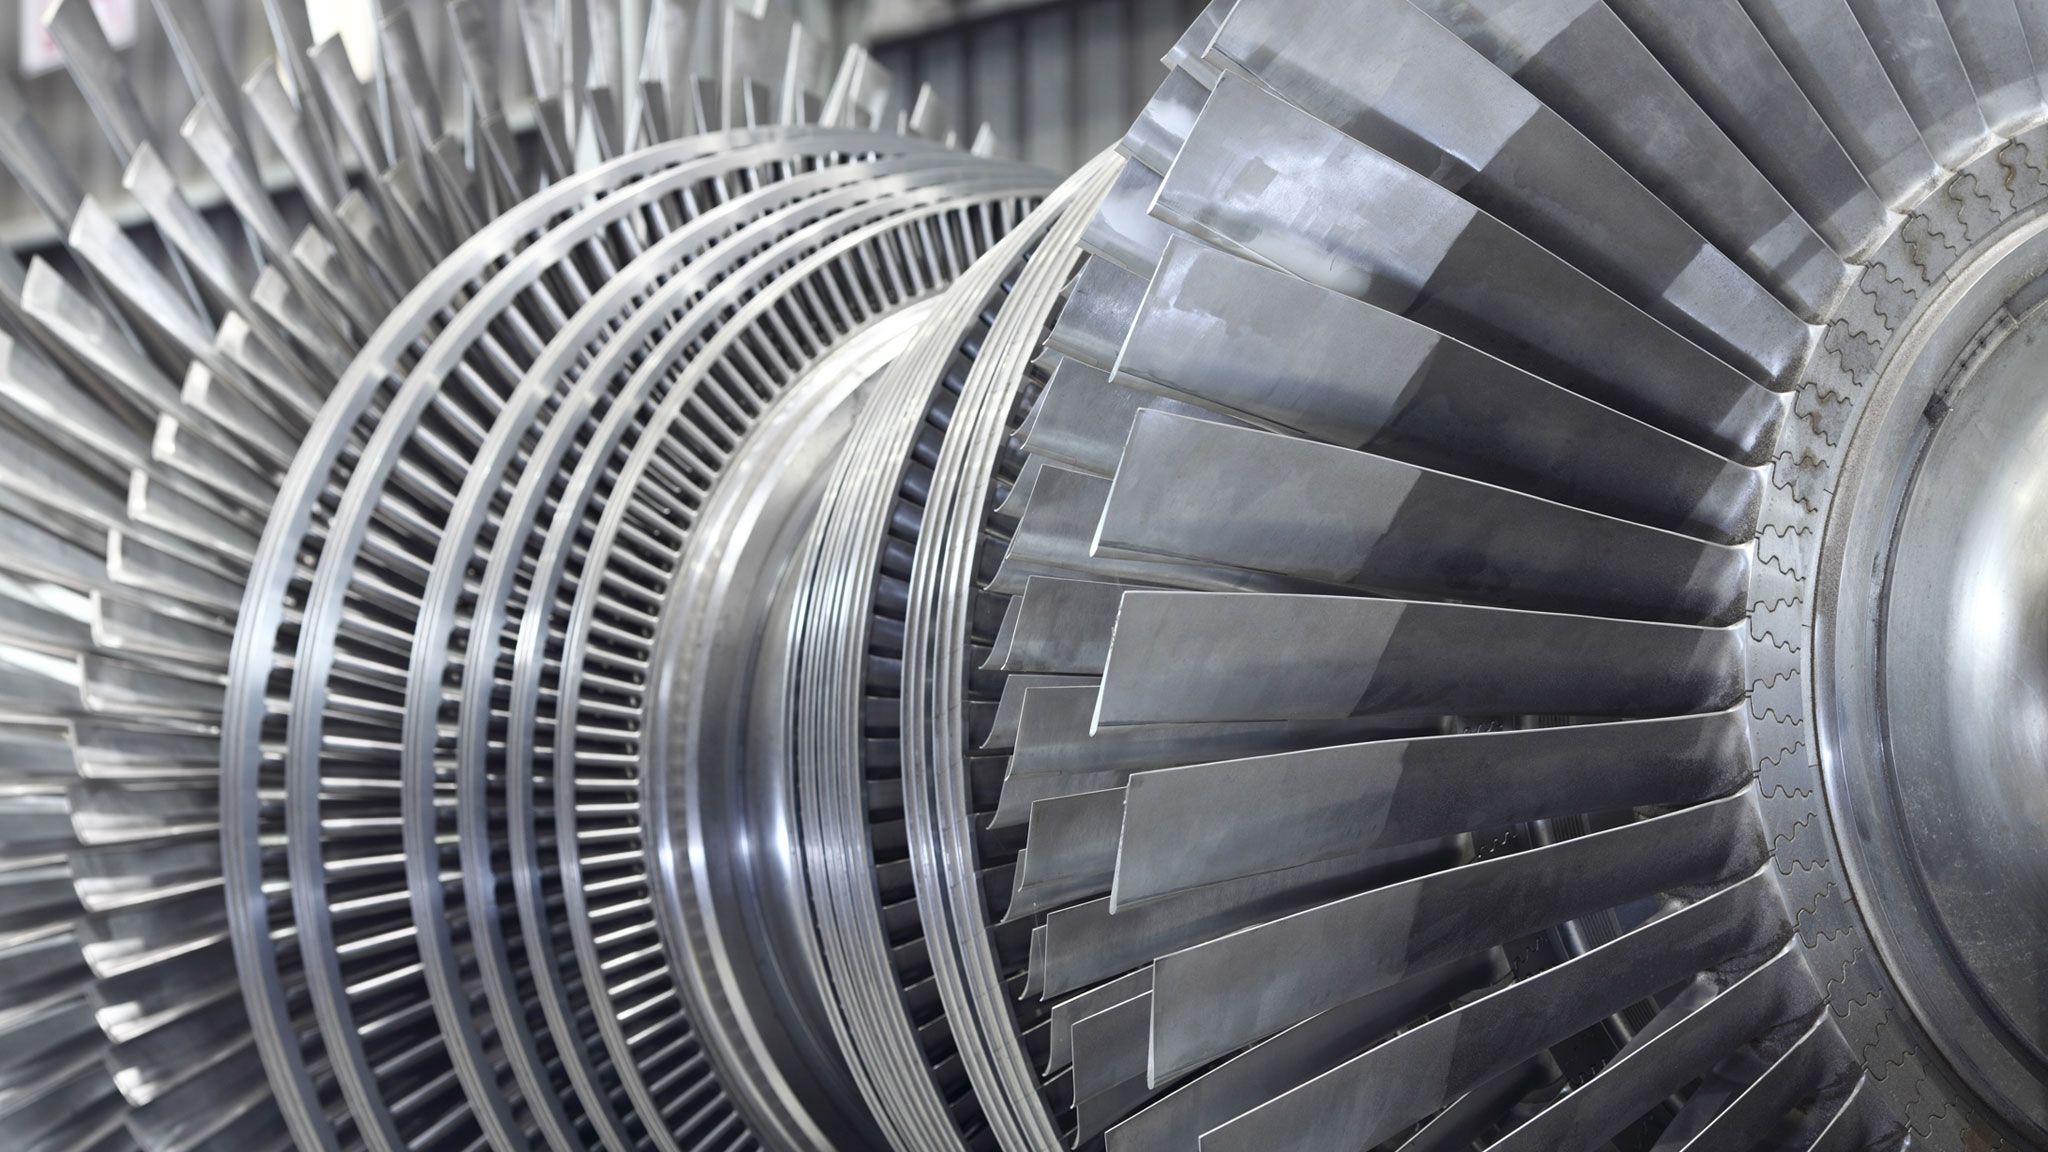 close up of a gas turbine